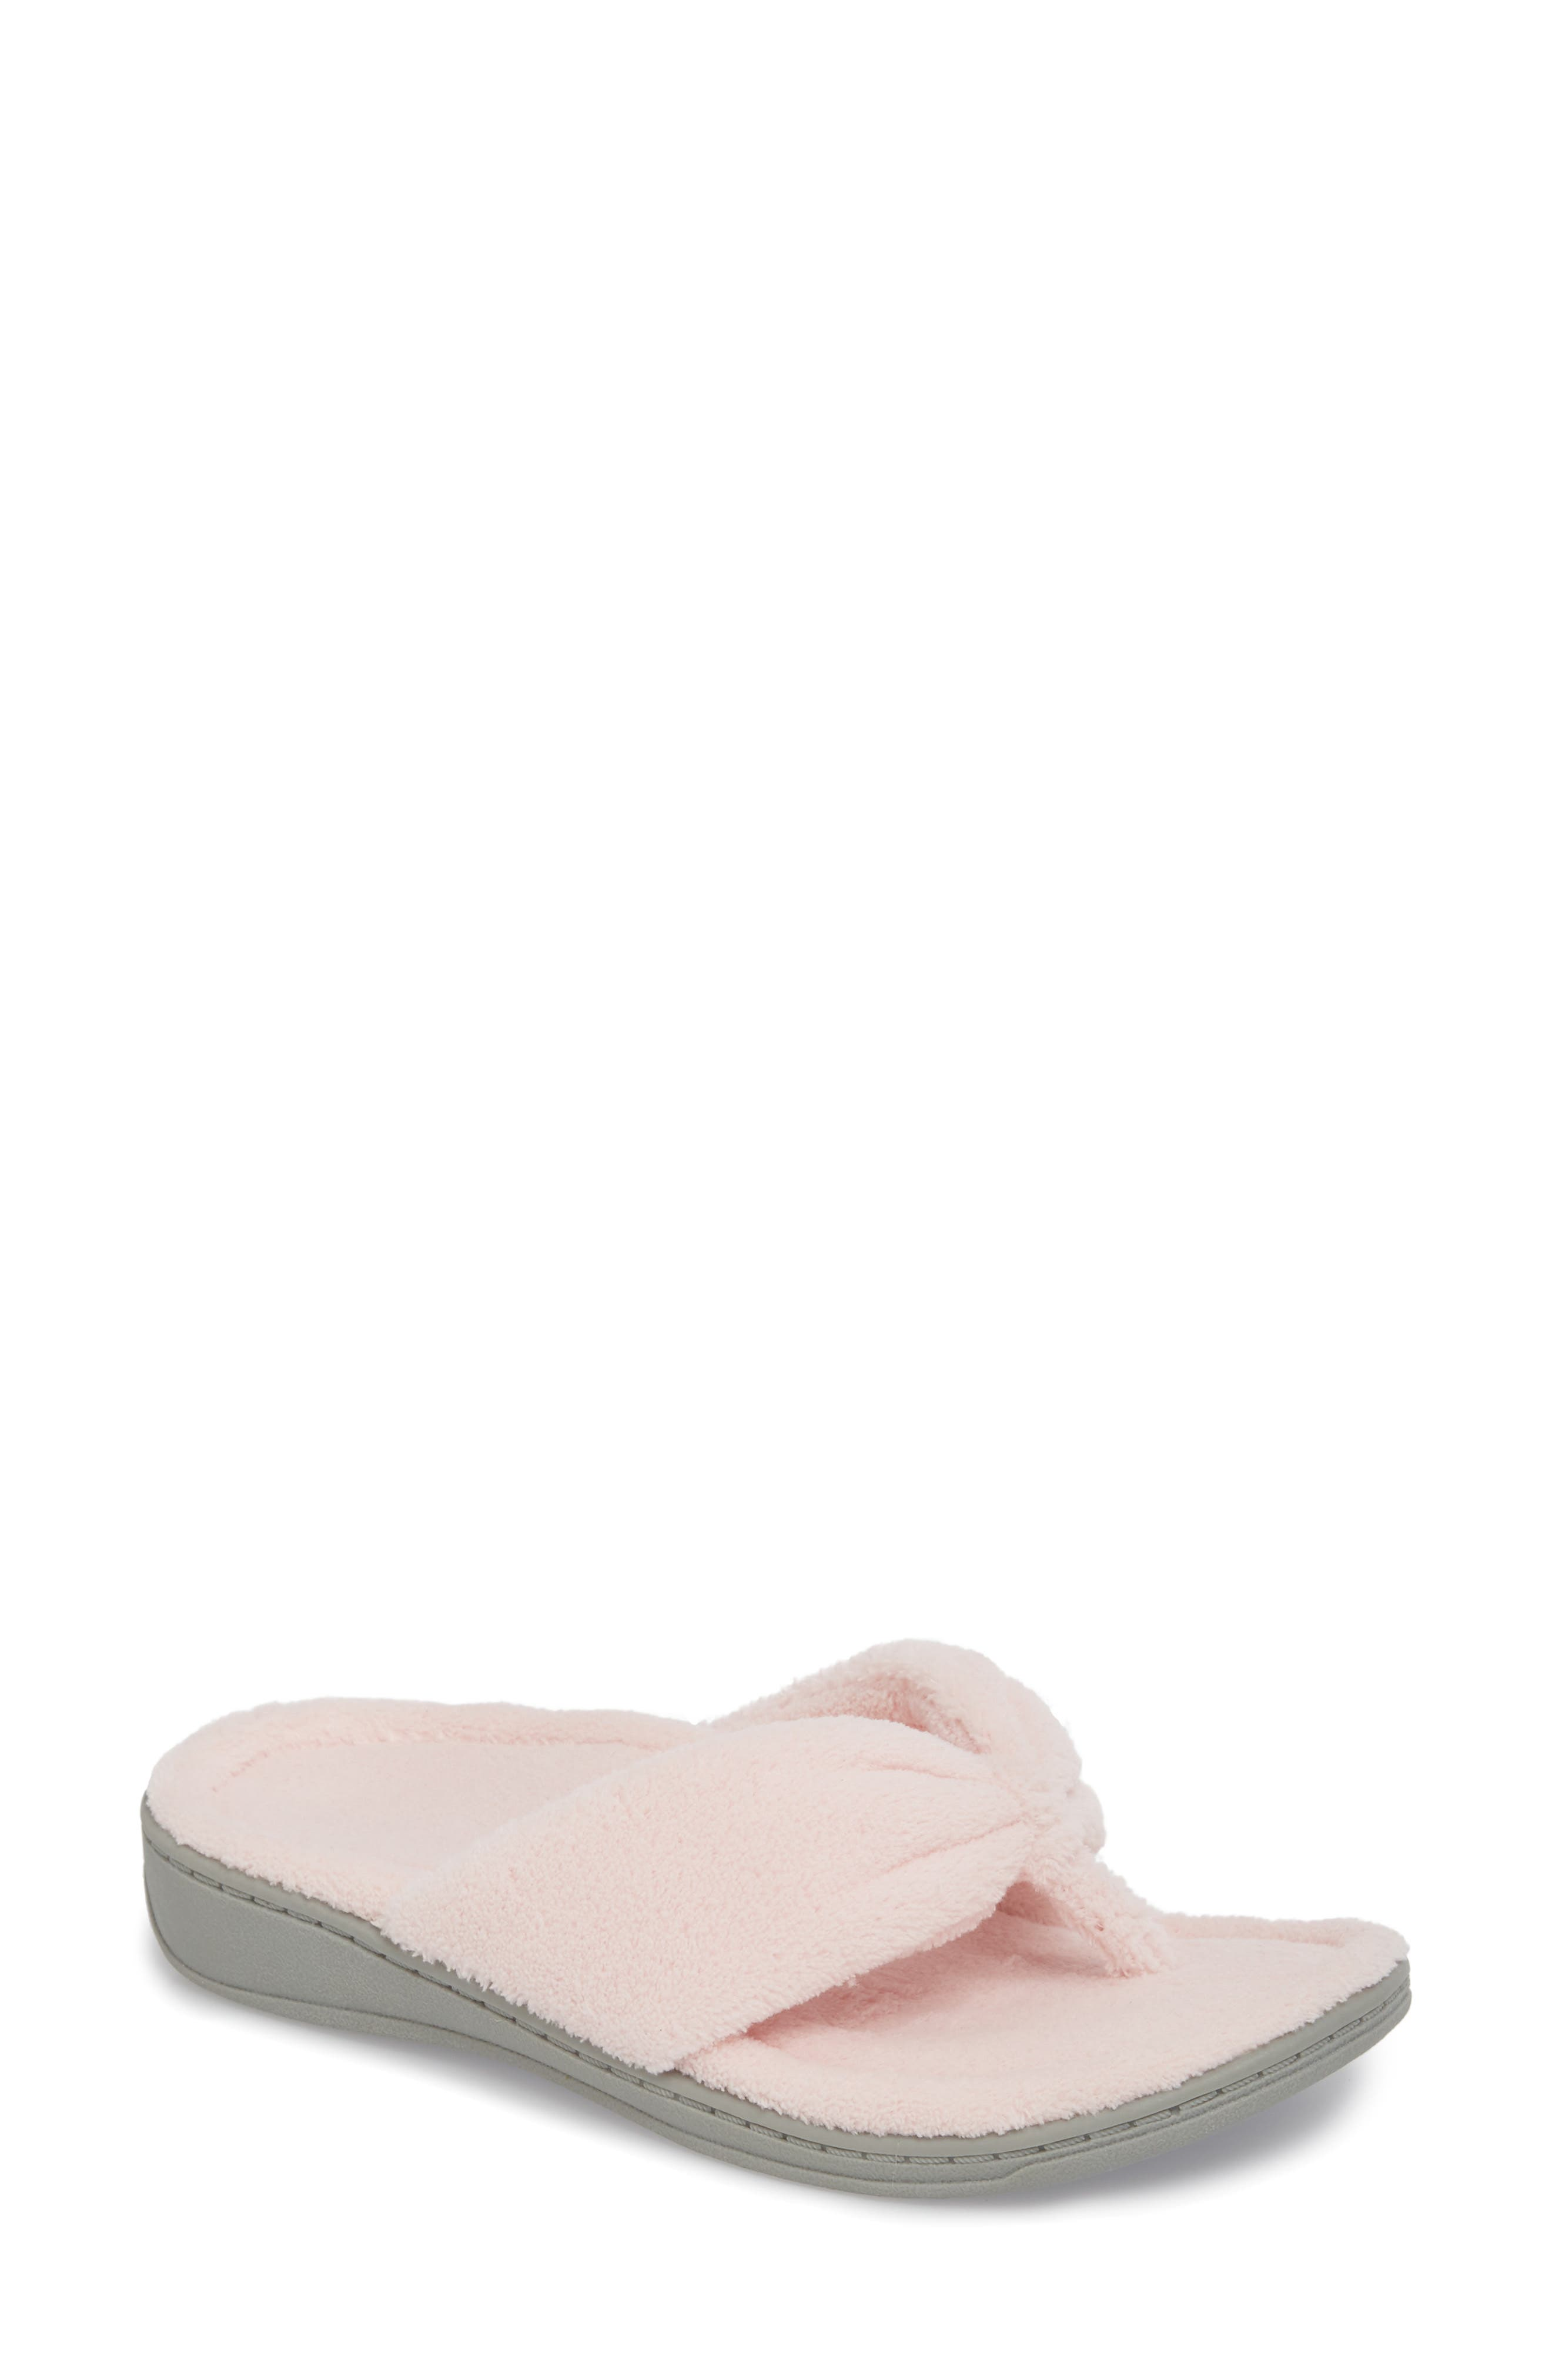 Vionic Gracie Slipper (Women)